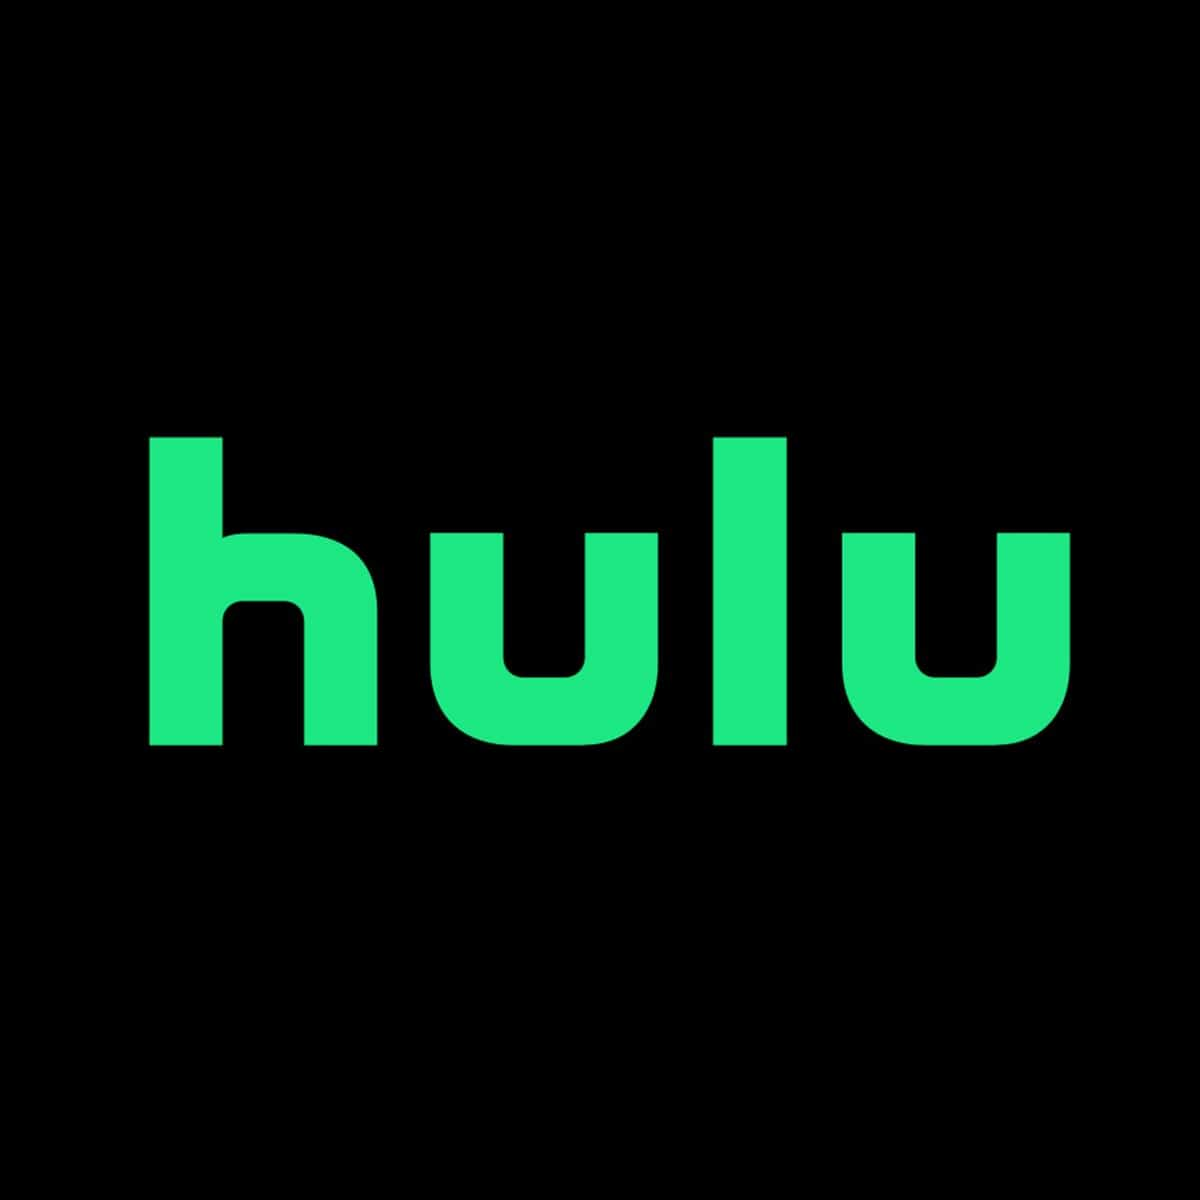 Hulu's Black Friday deal offers a year of streaming for just $1.99 a month 21